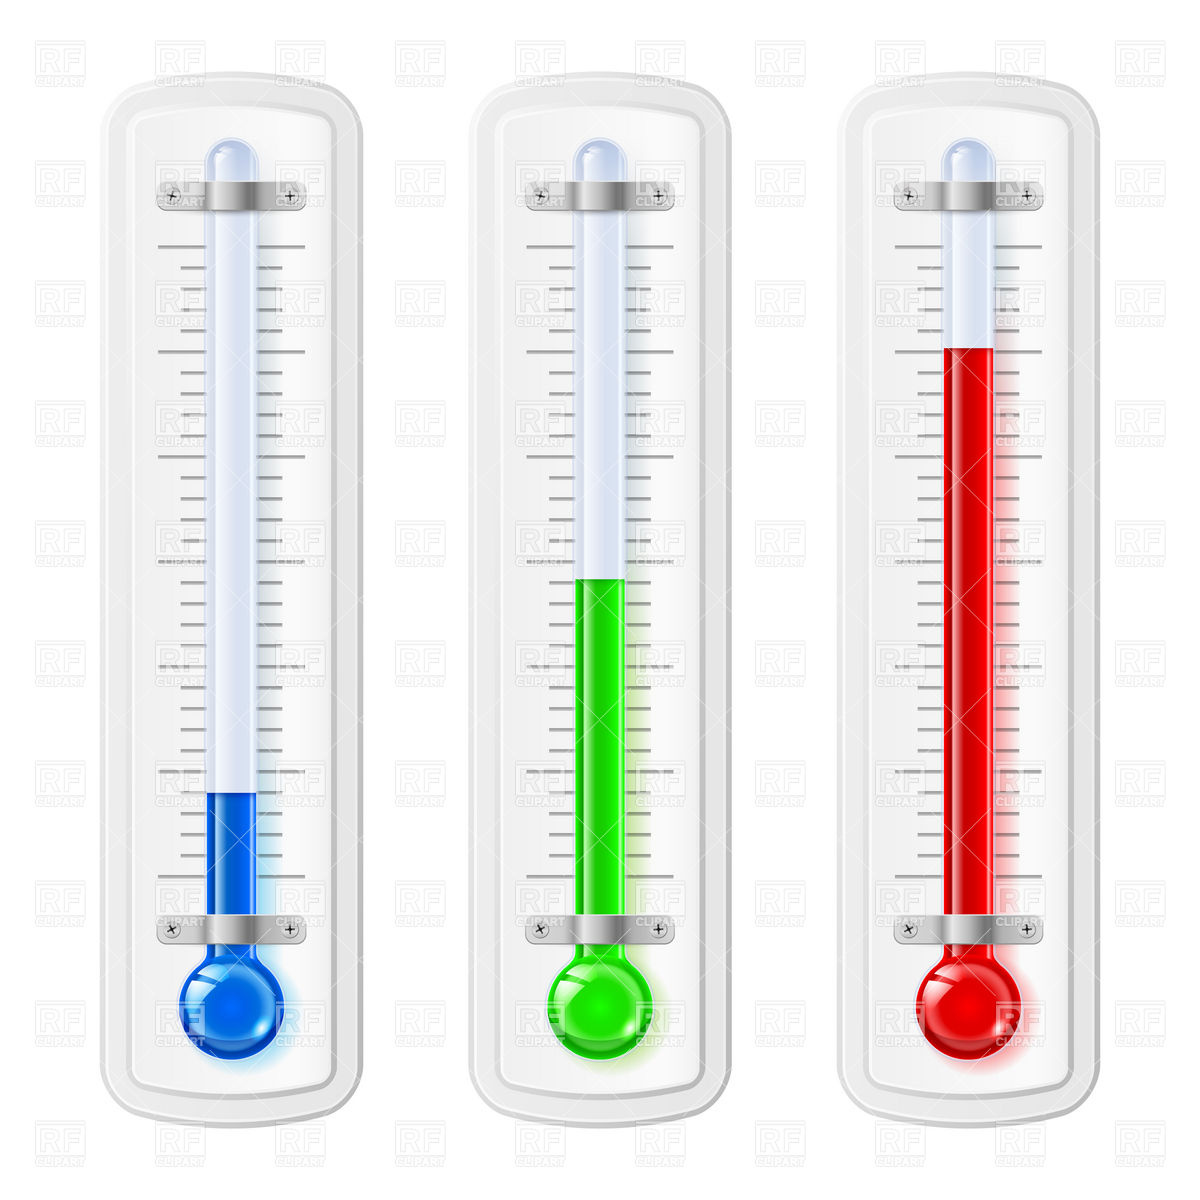 Warmth clipart low temperature Thermometer Clipart Temperature Temperature Perfect